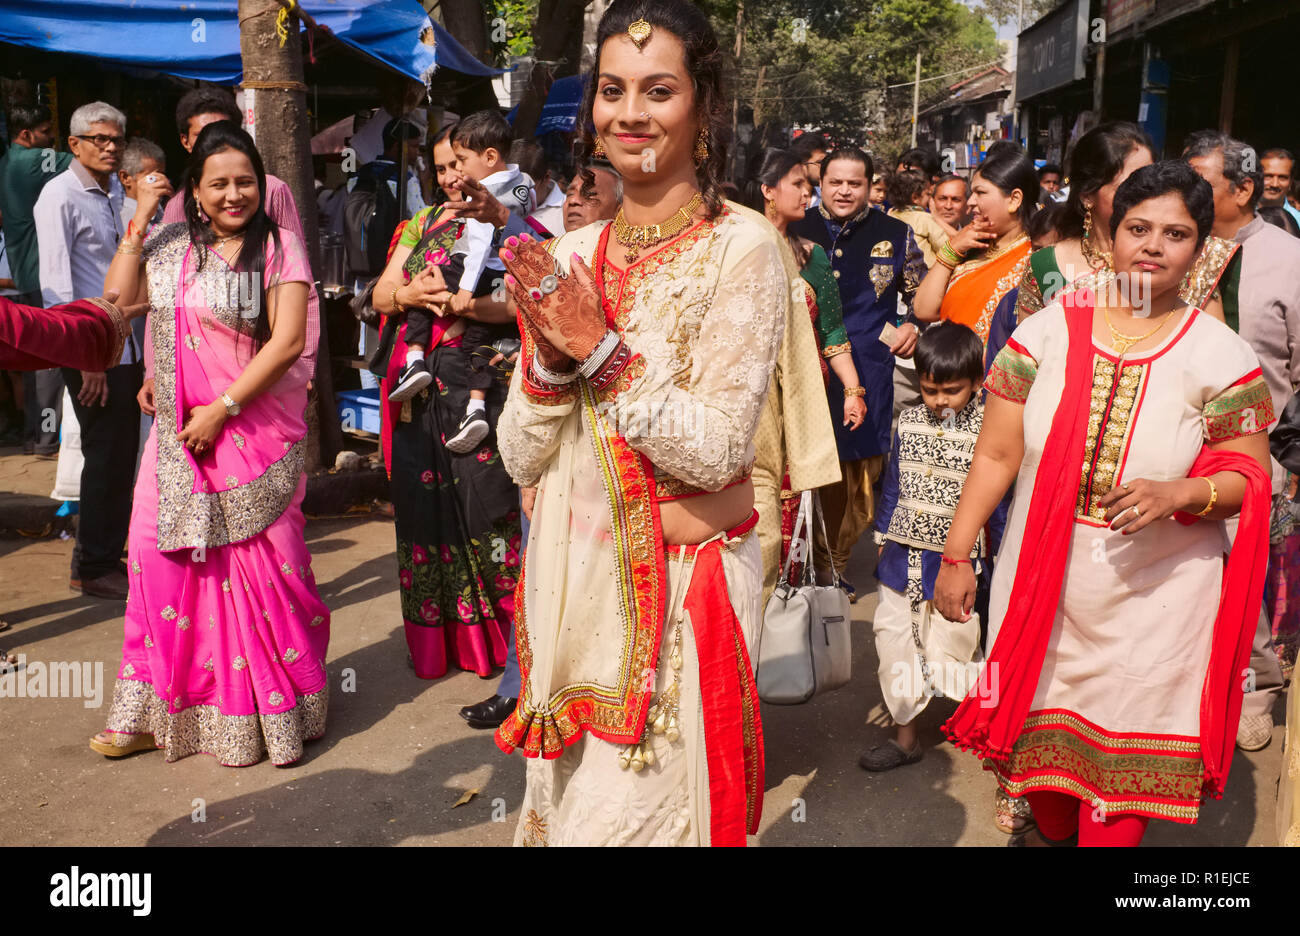 A Gujarati wedding party in Matunga, a suburb of Mumbai, India, spills out into the street, the bride up front with traditionally henna-painted hands Stock Photo